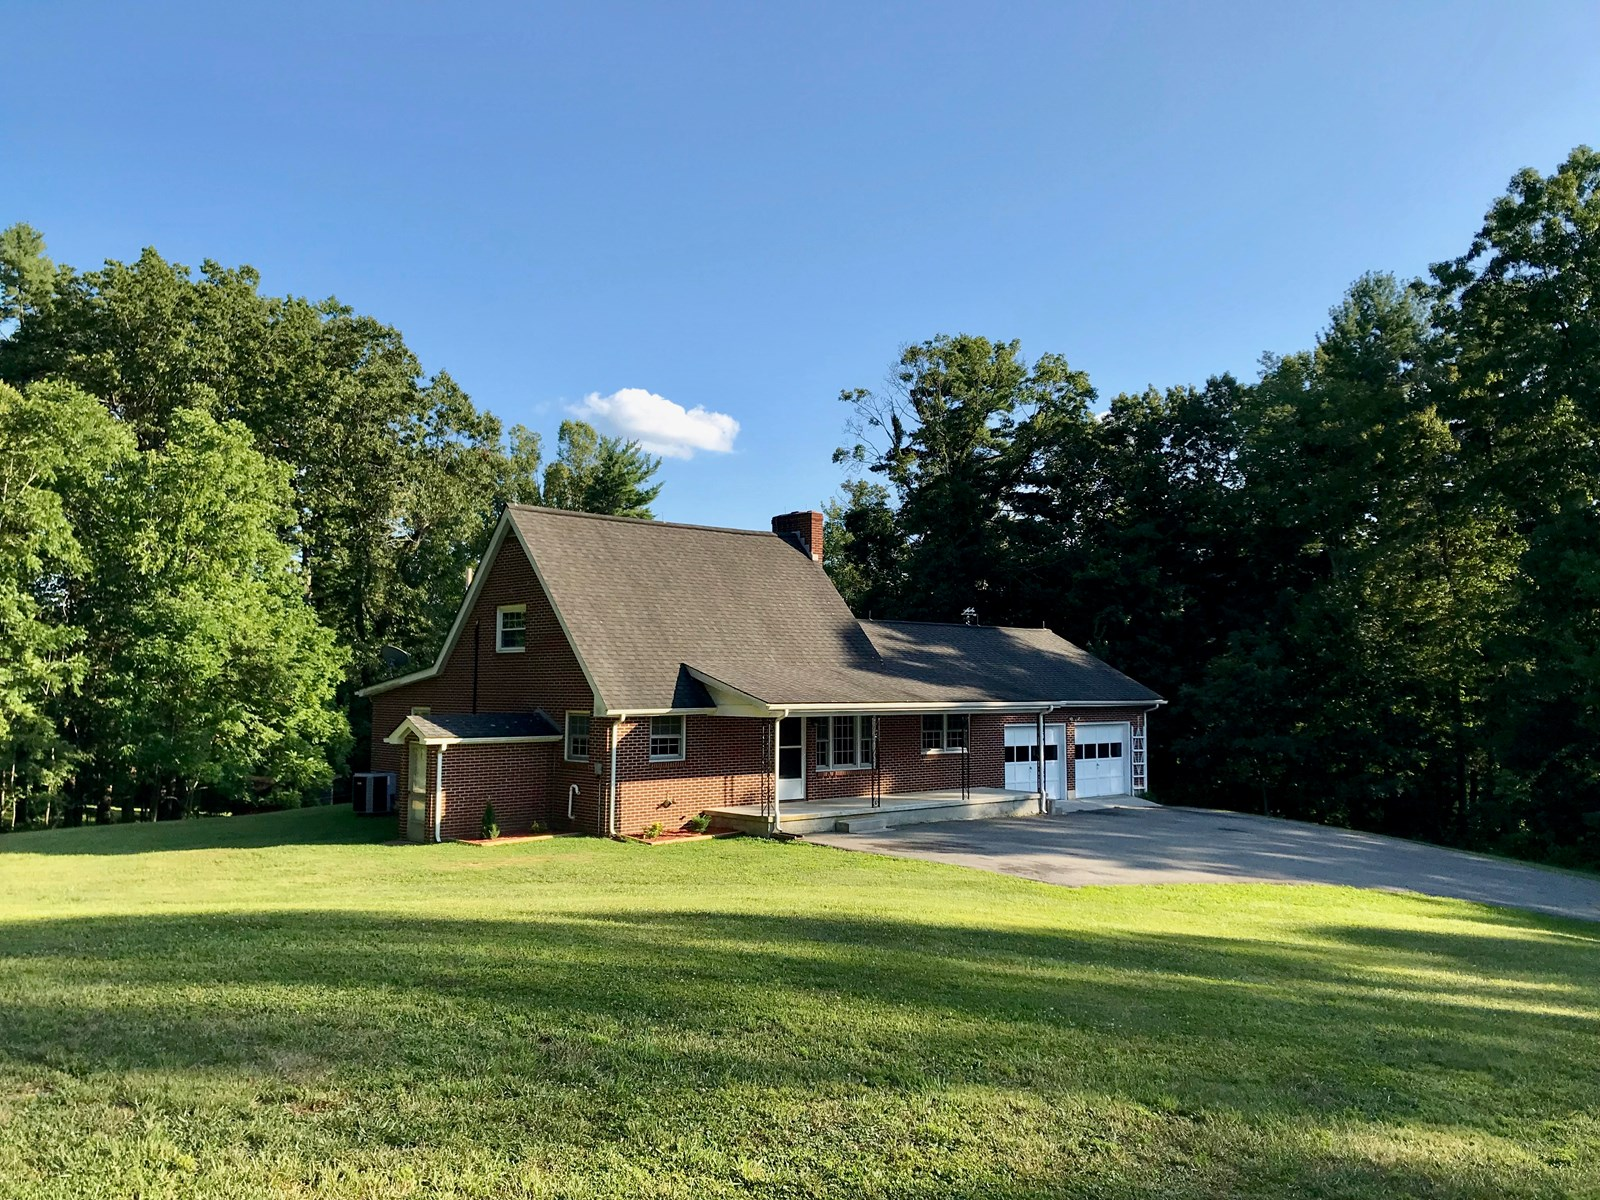 Beautiful Brick Country Home for Sale in Check VA!